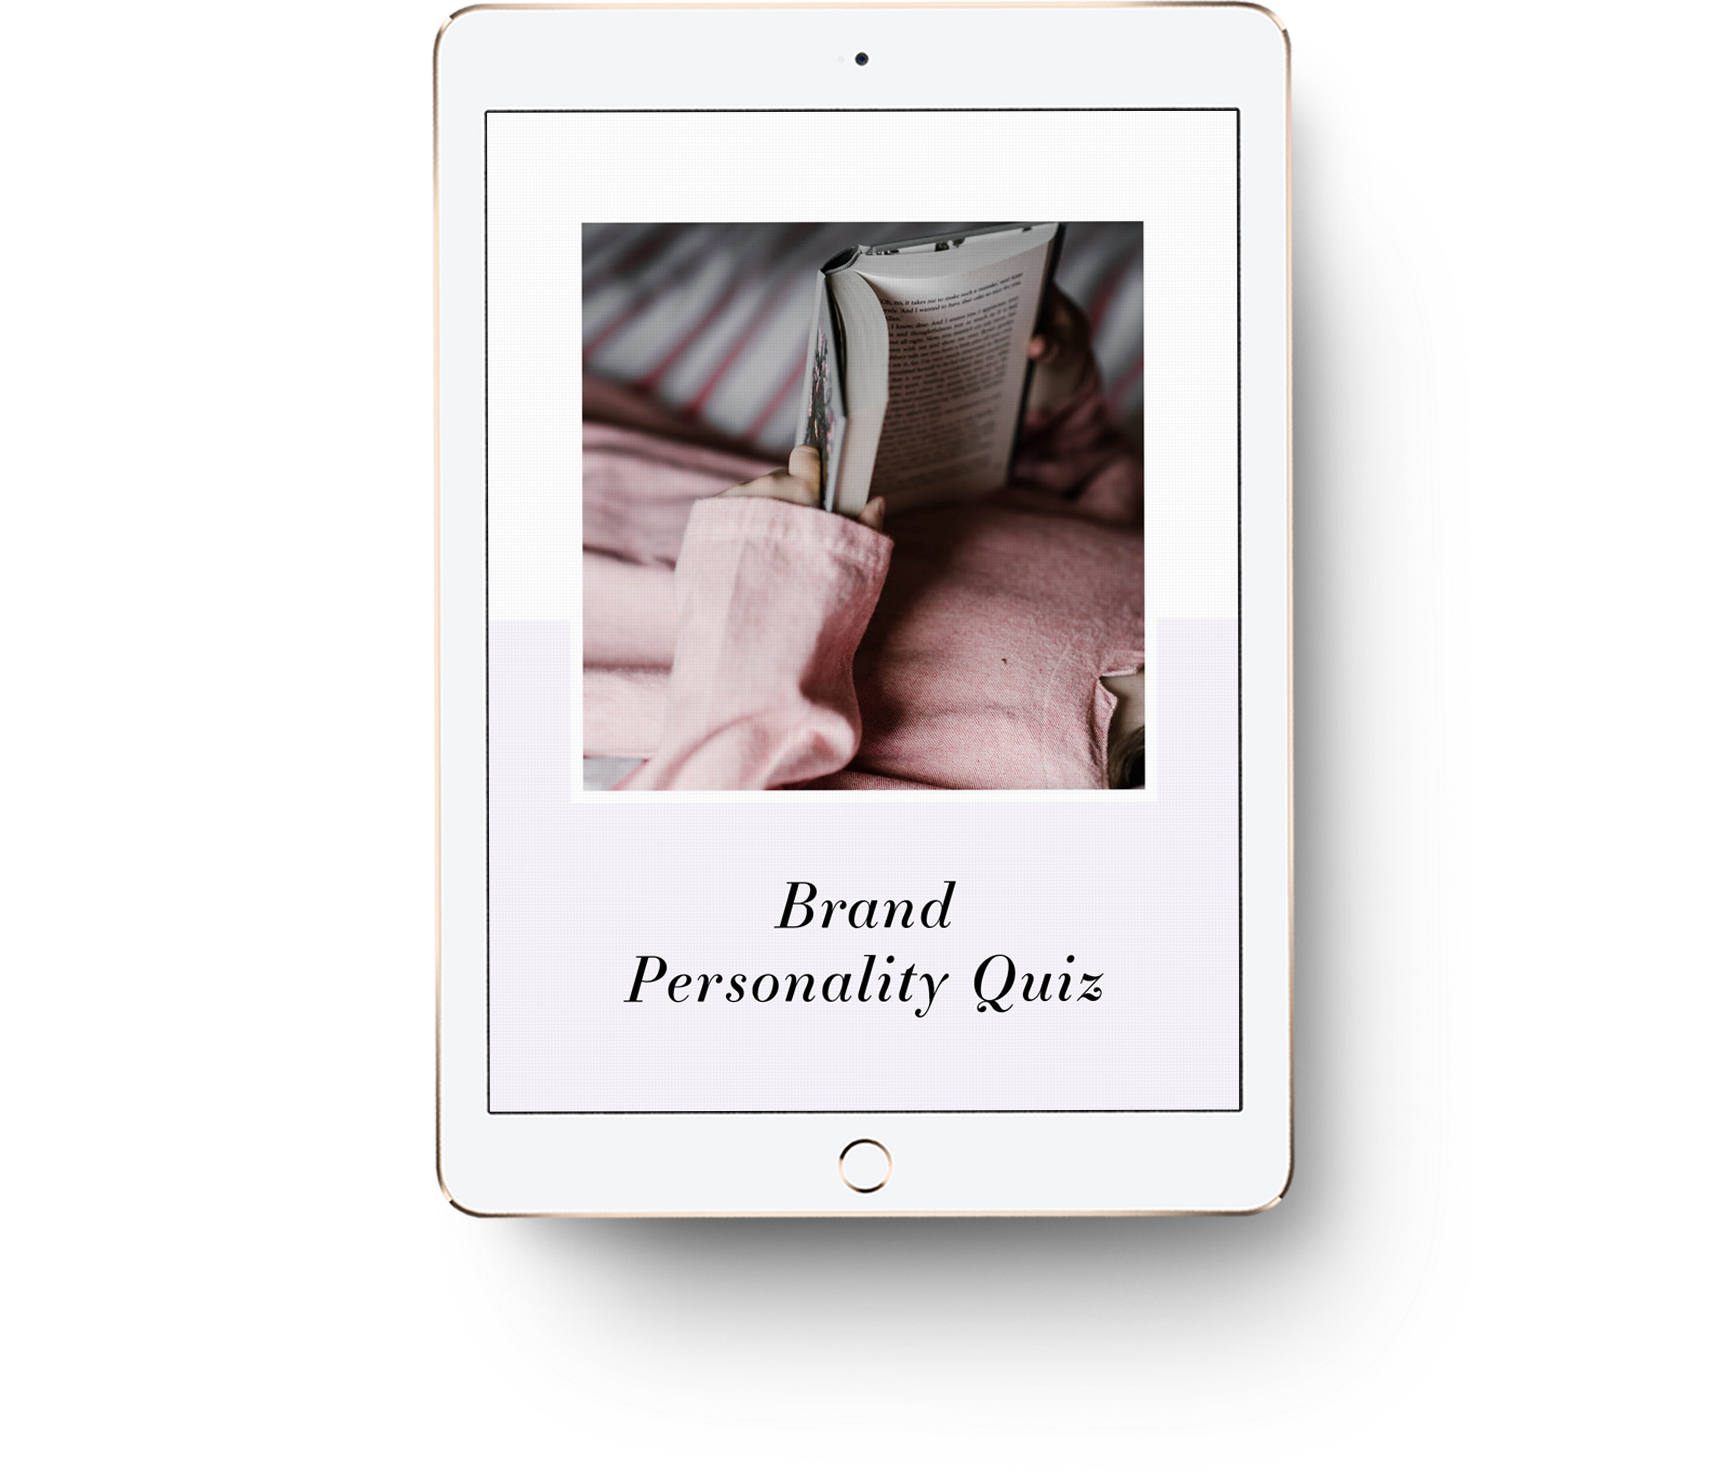 Discover your brand personality with my free Brand Personality Quiz